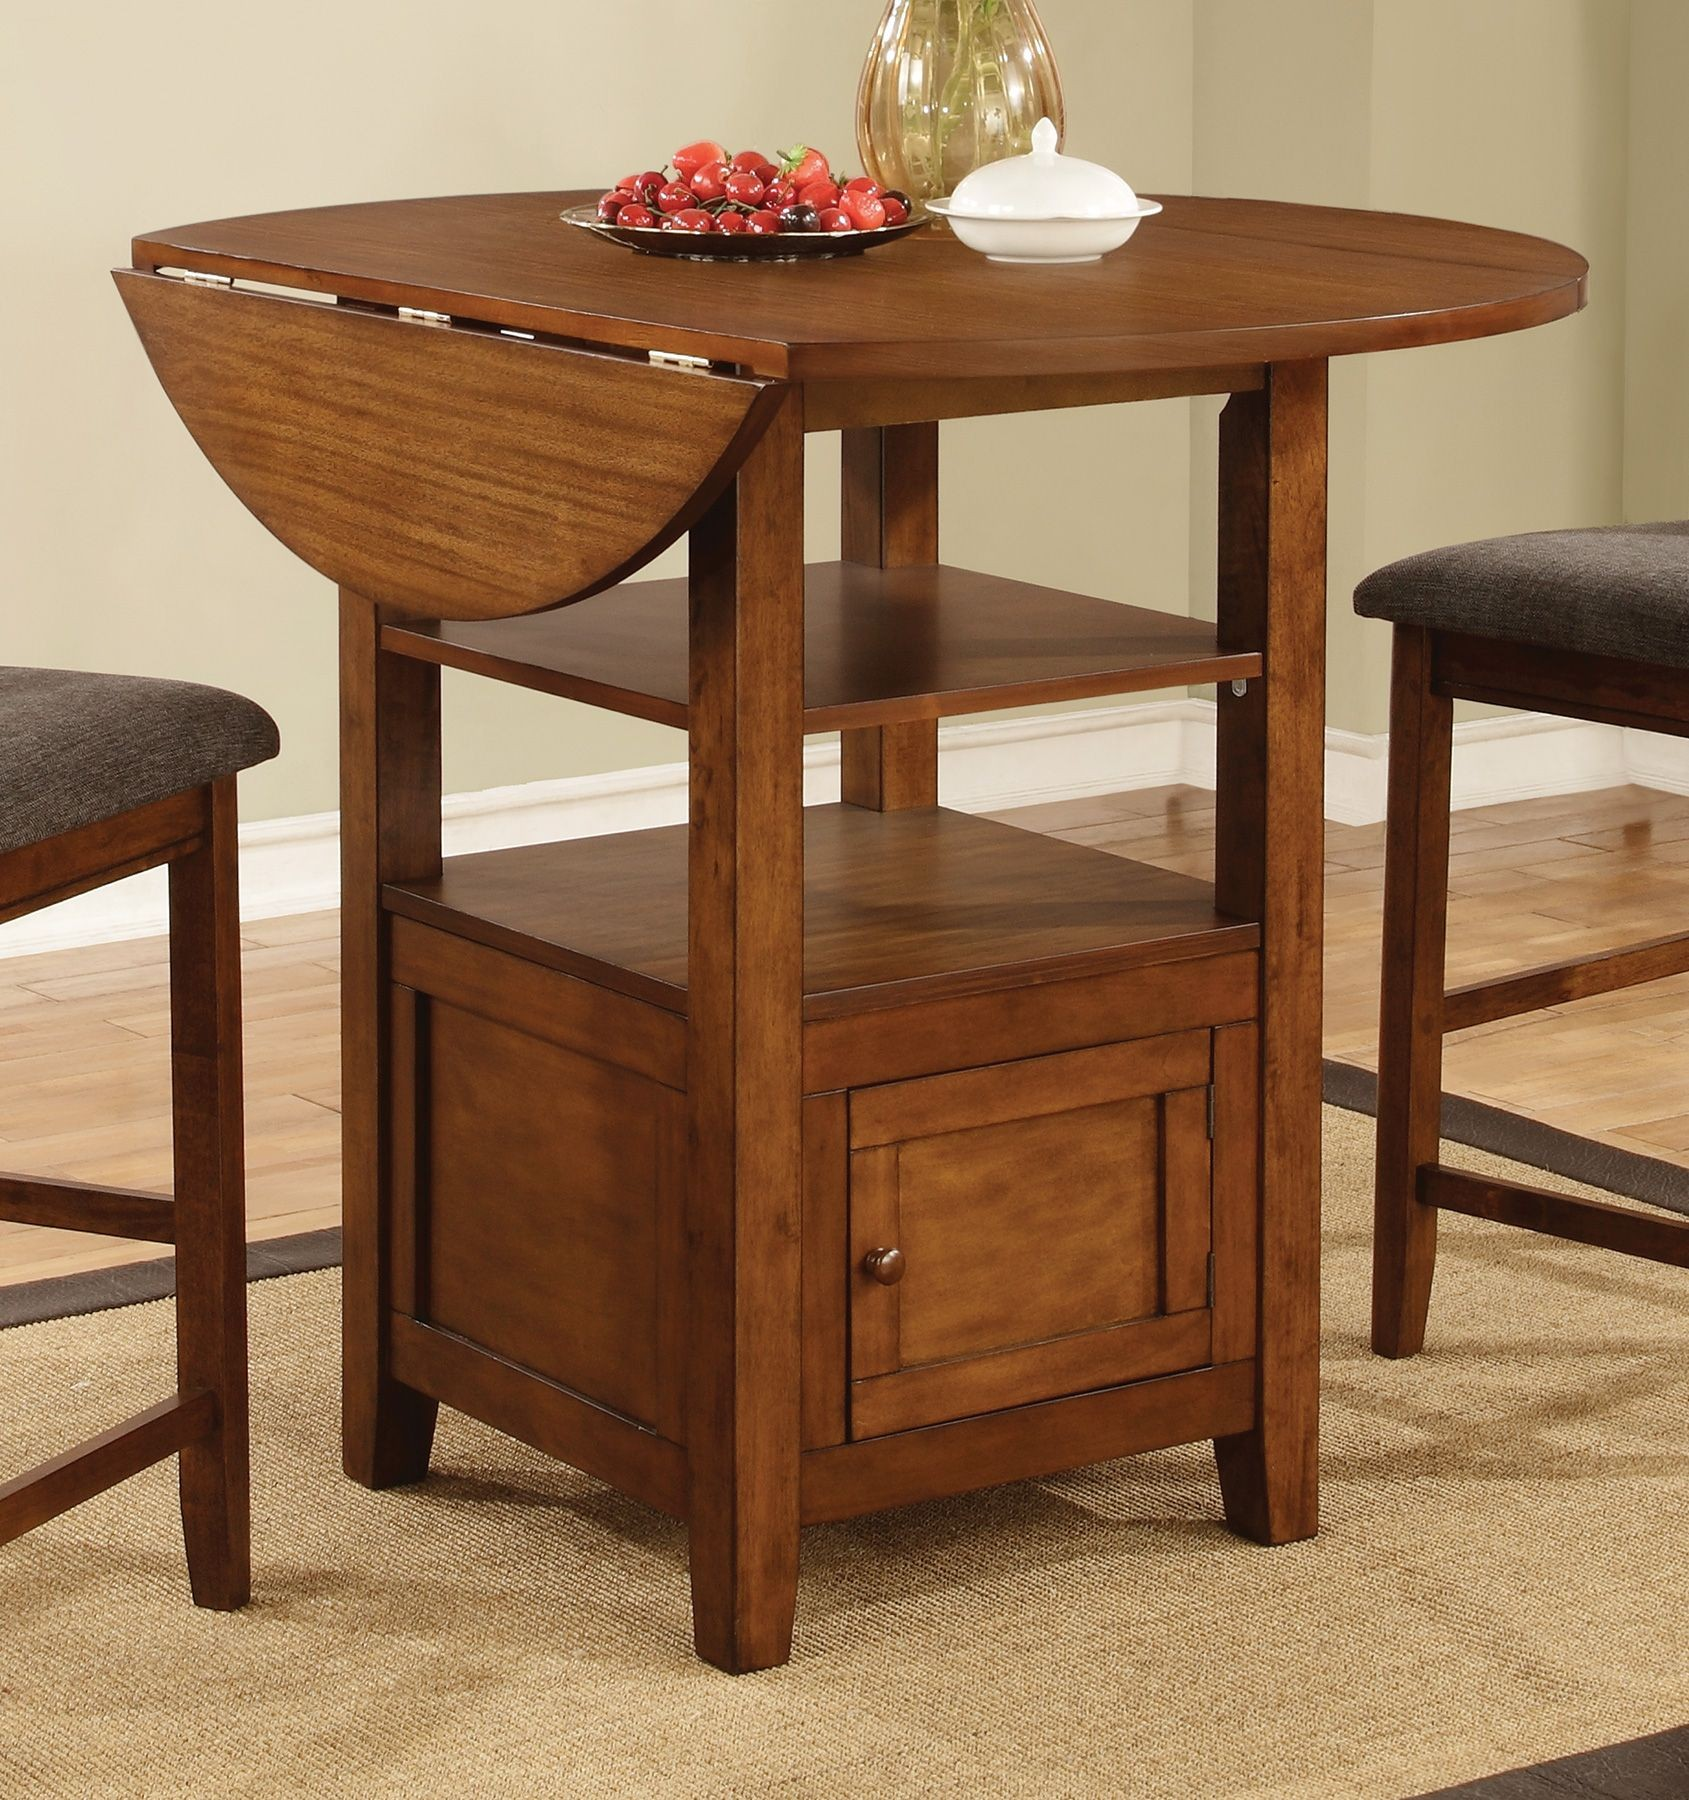 Stockton Warm Brown Drop Leaf Round Counter Height Dining  : 105408 from colemanfurniture.com size 1689 x 1800 jpeg 629kB